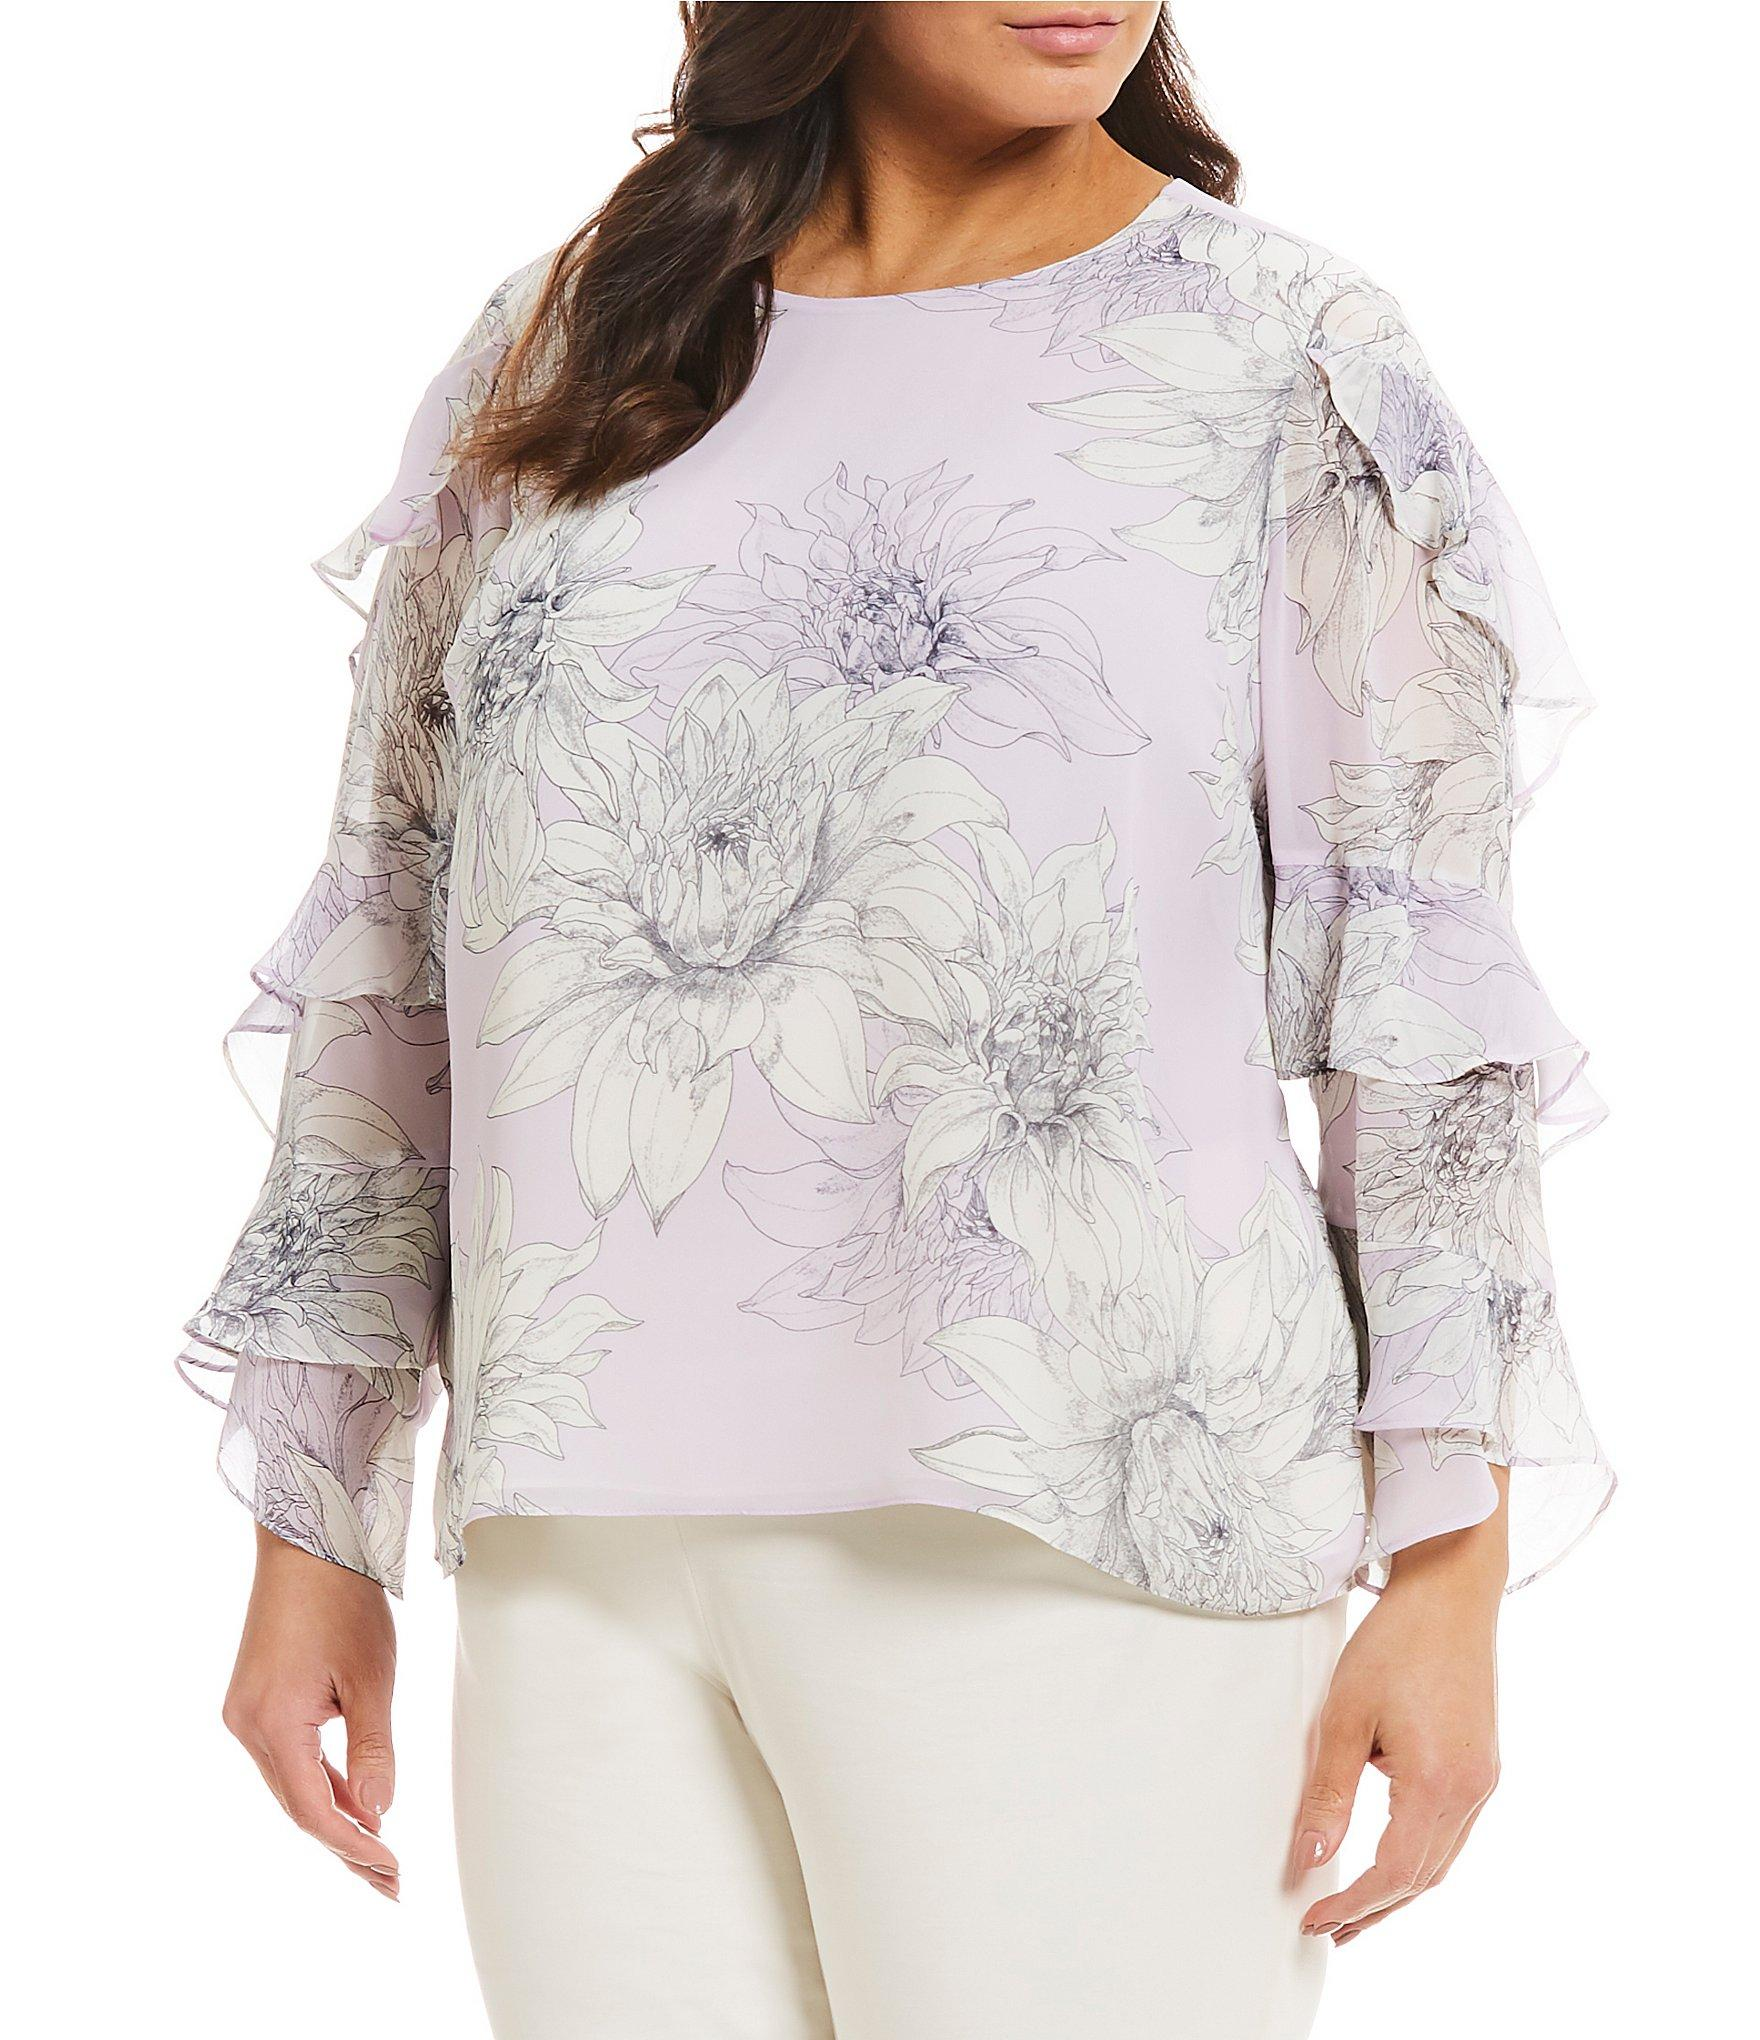 6f72ef9e595 Vince Camuto. Women s Plus Size Tiered Ruffle Long Sleeve Floral Blouse